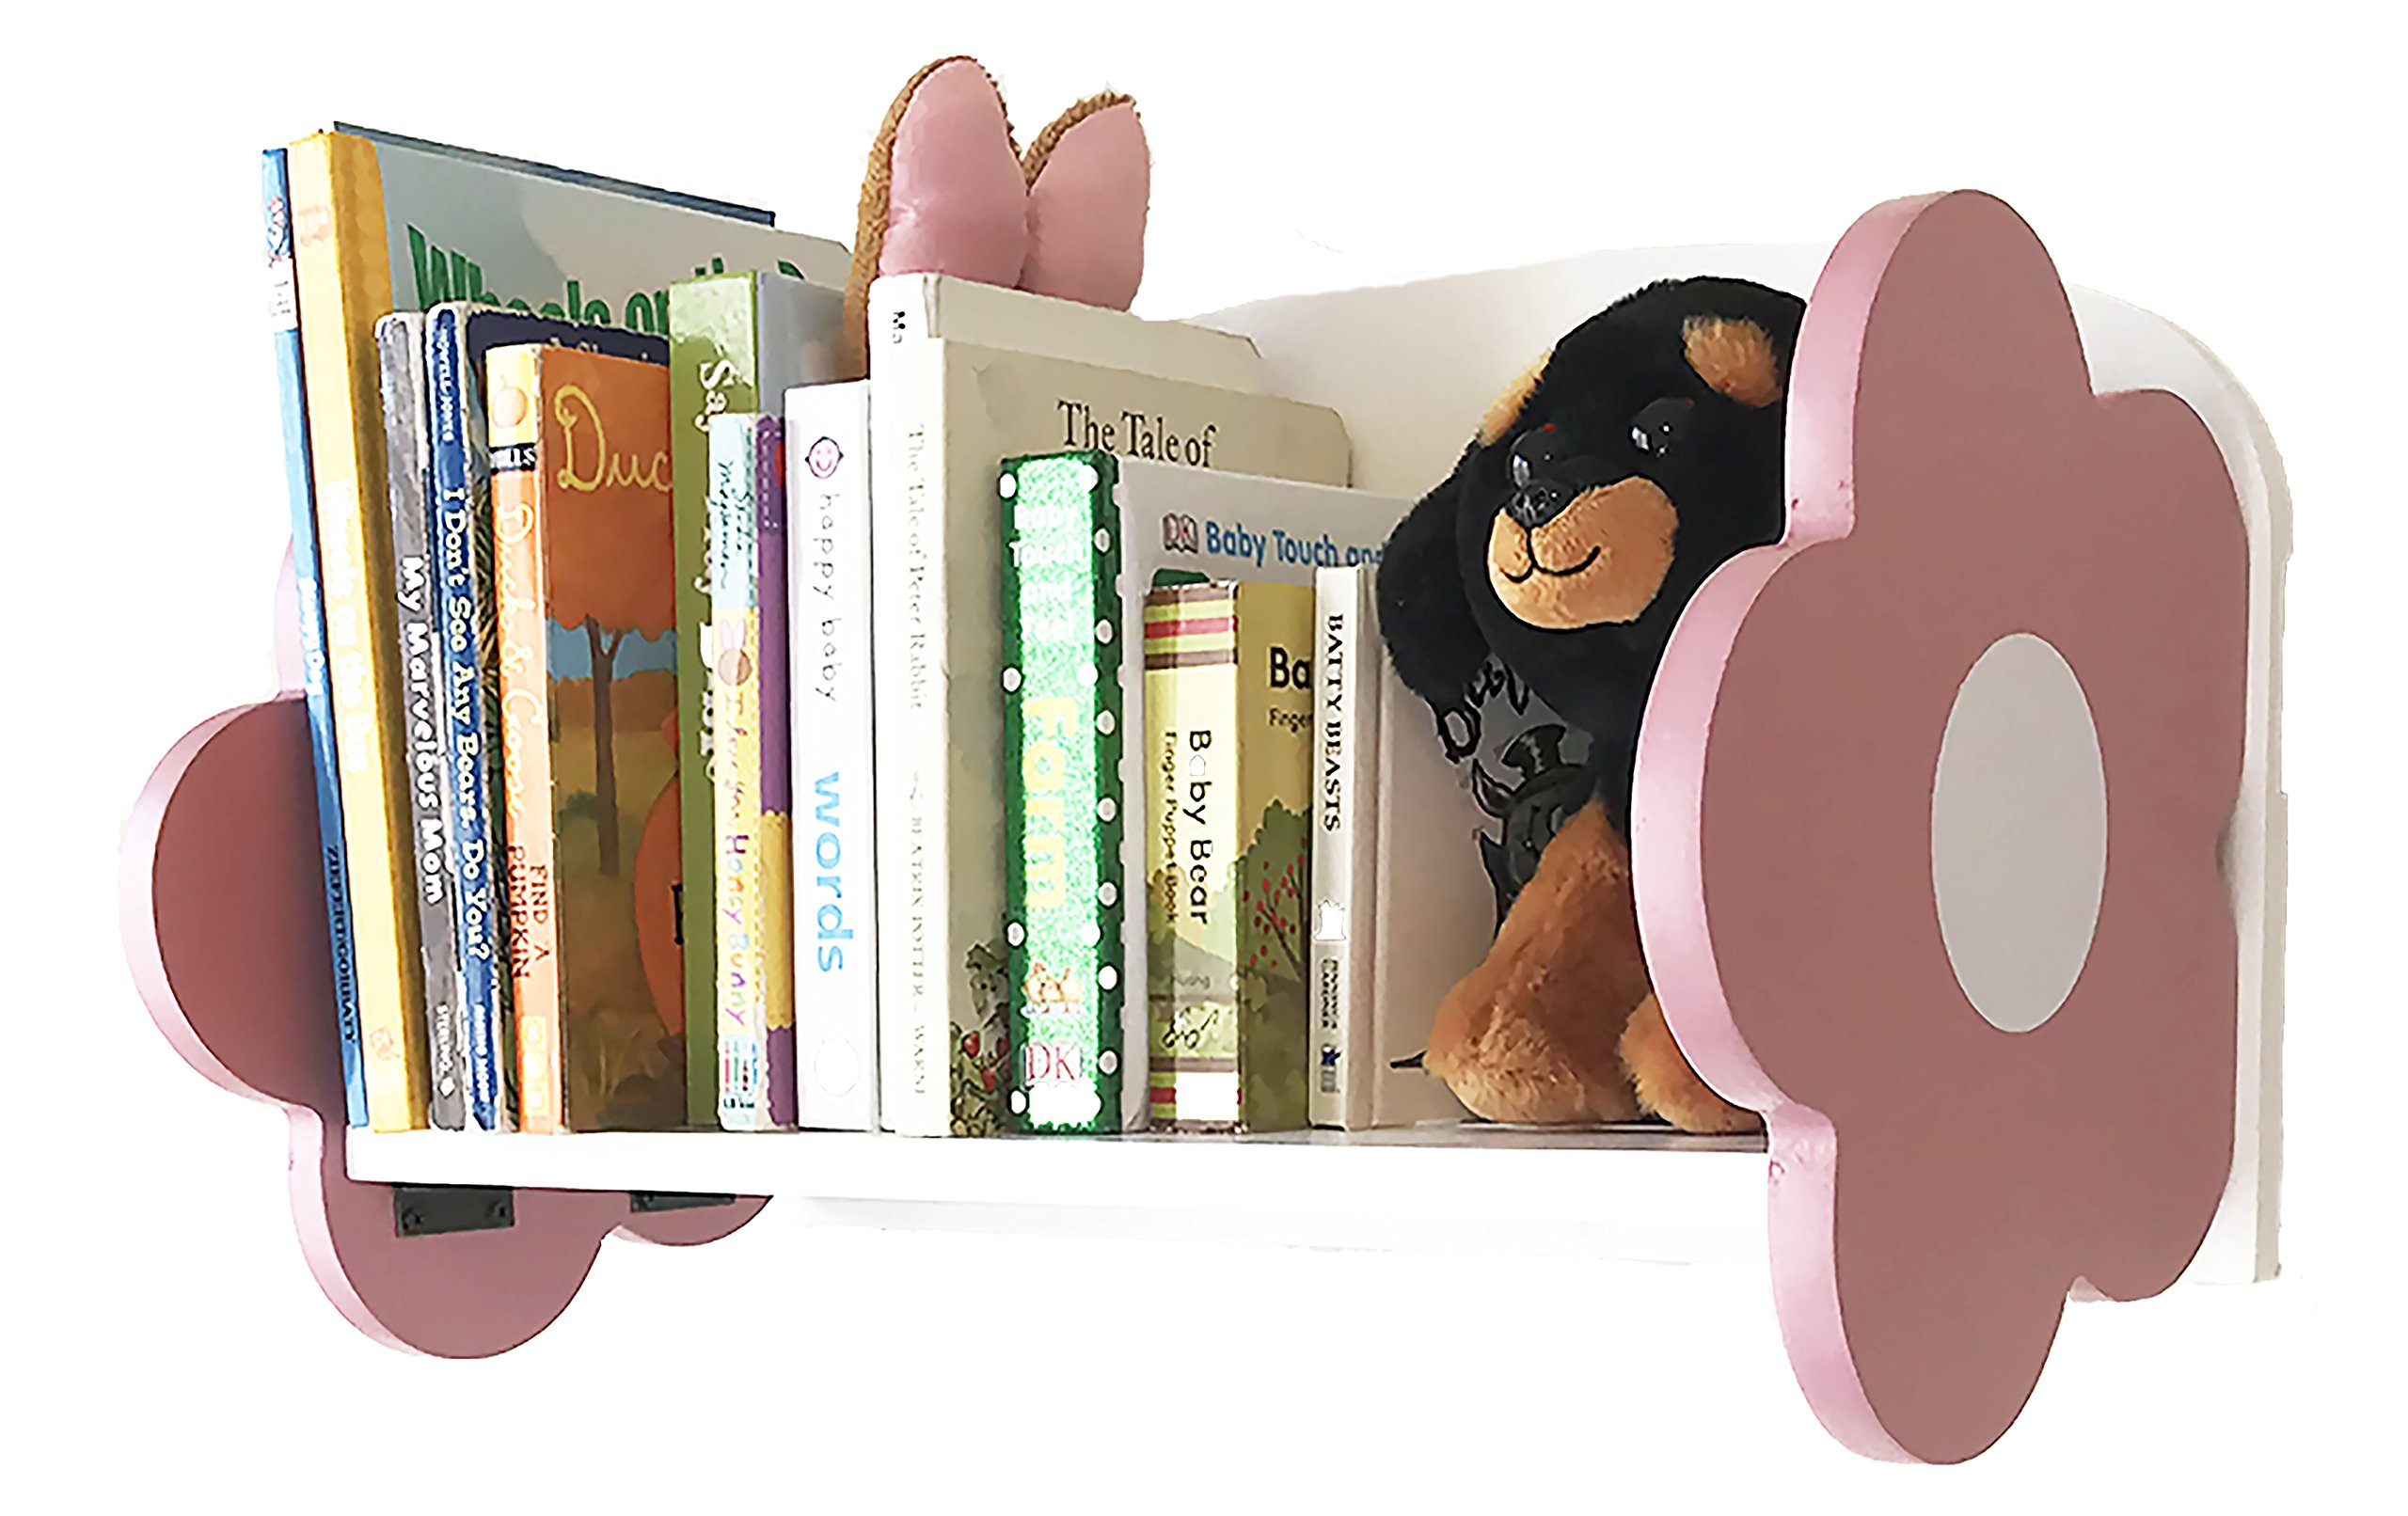 bbSmarts Floating Wall Shelf/Bookshelf for Baby Room/Nursery or Kid's Room - Unique Decor - Pink and White Flower Design